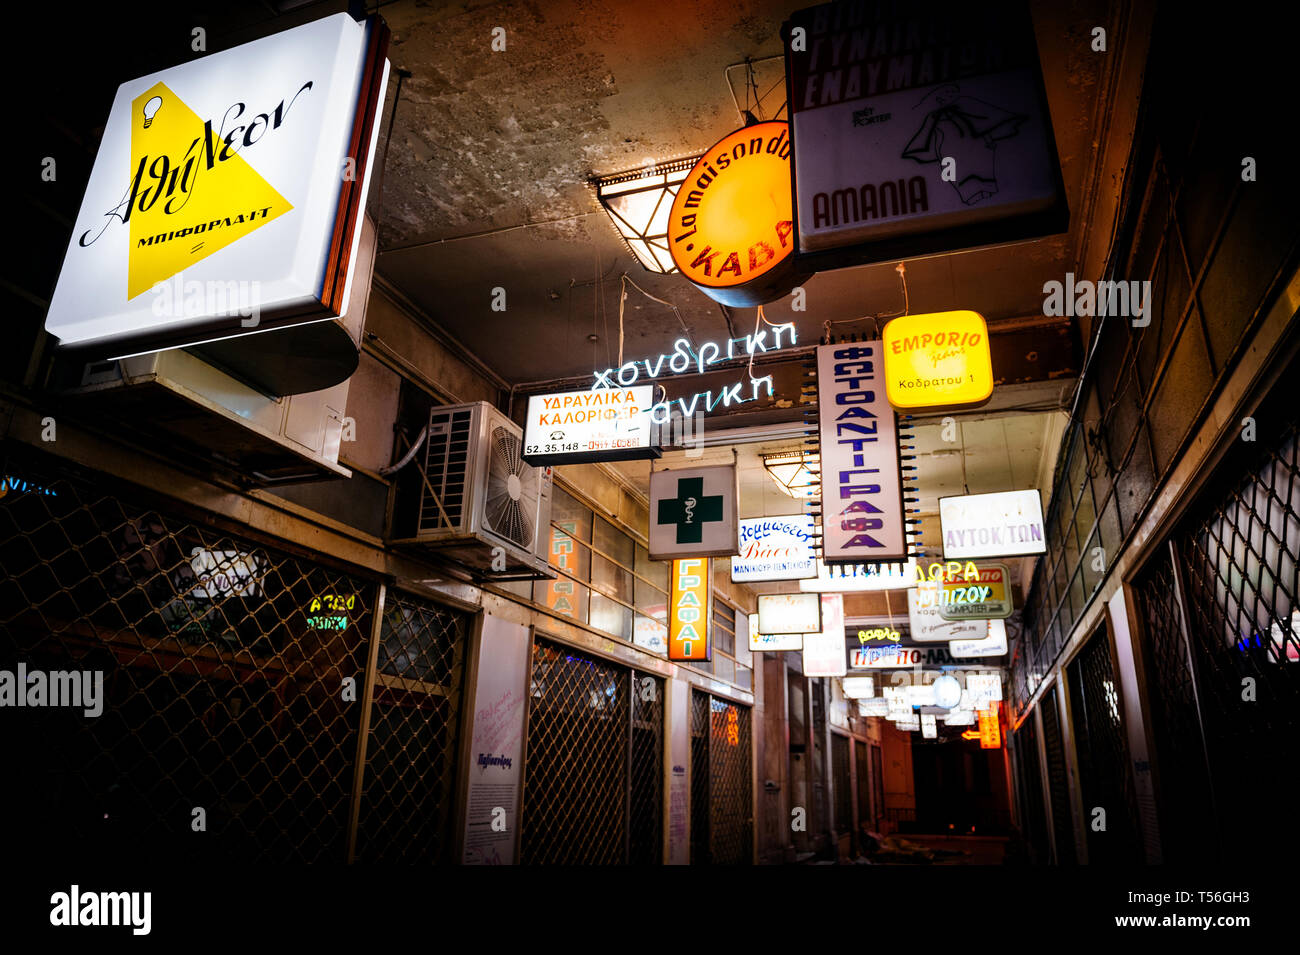 Athens, Greece - 26 Mar 2016: Multiple busines signs totmes and firms logotypes on the passage in central Athens on Kolokotroni 3, Athina 105 62 - Stock Image